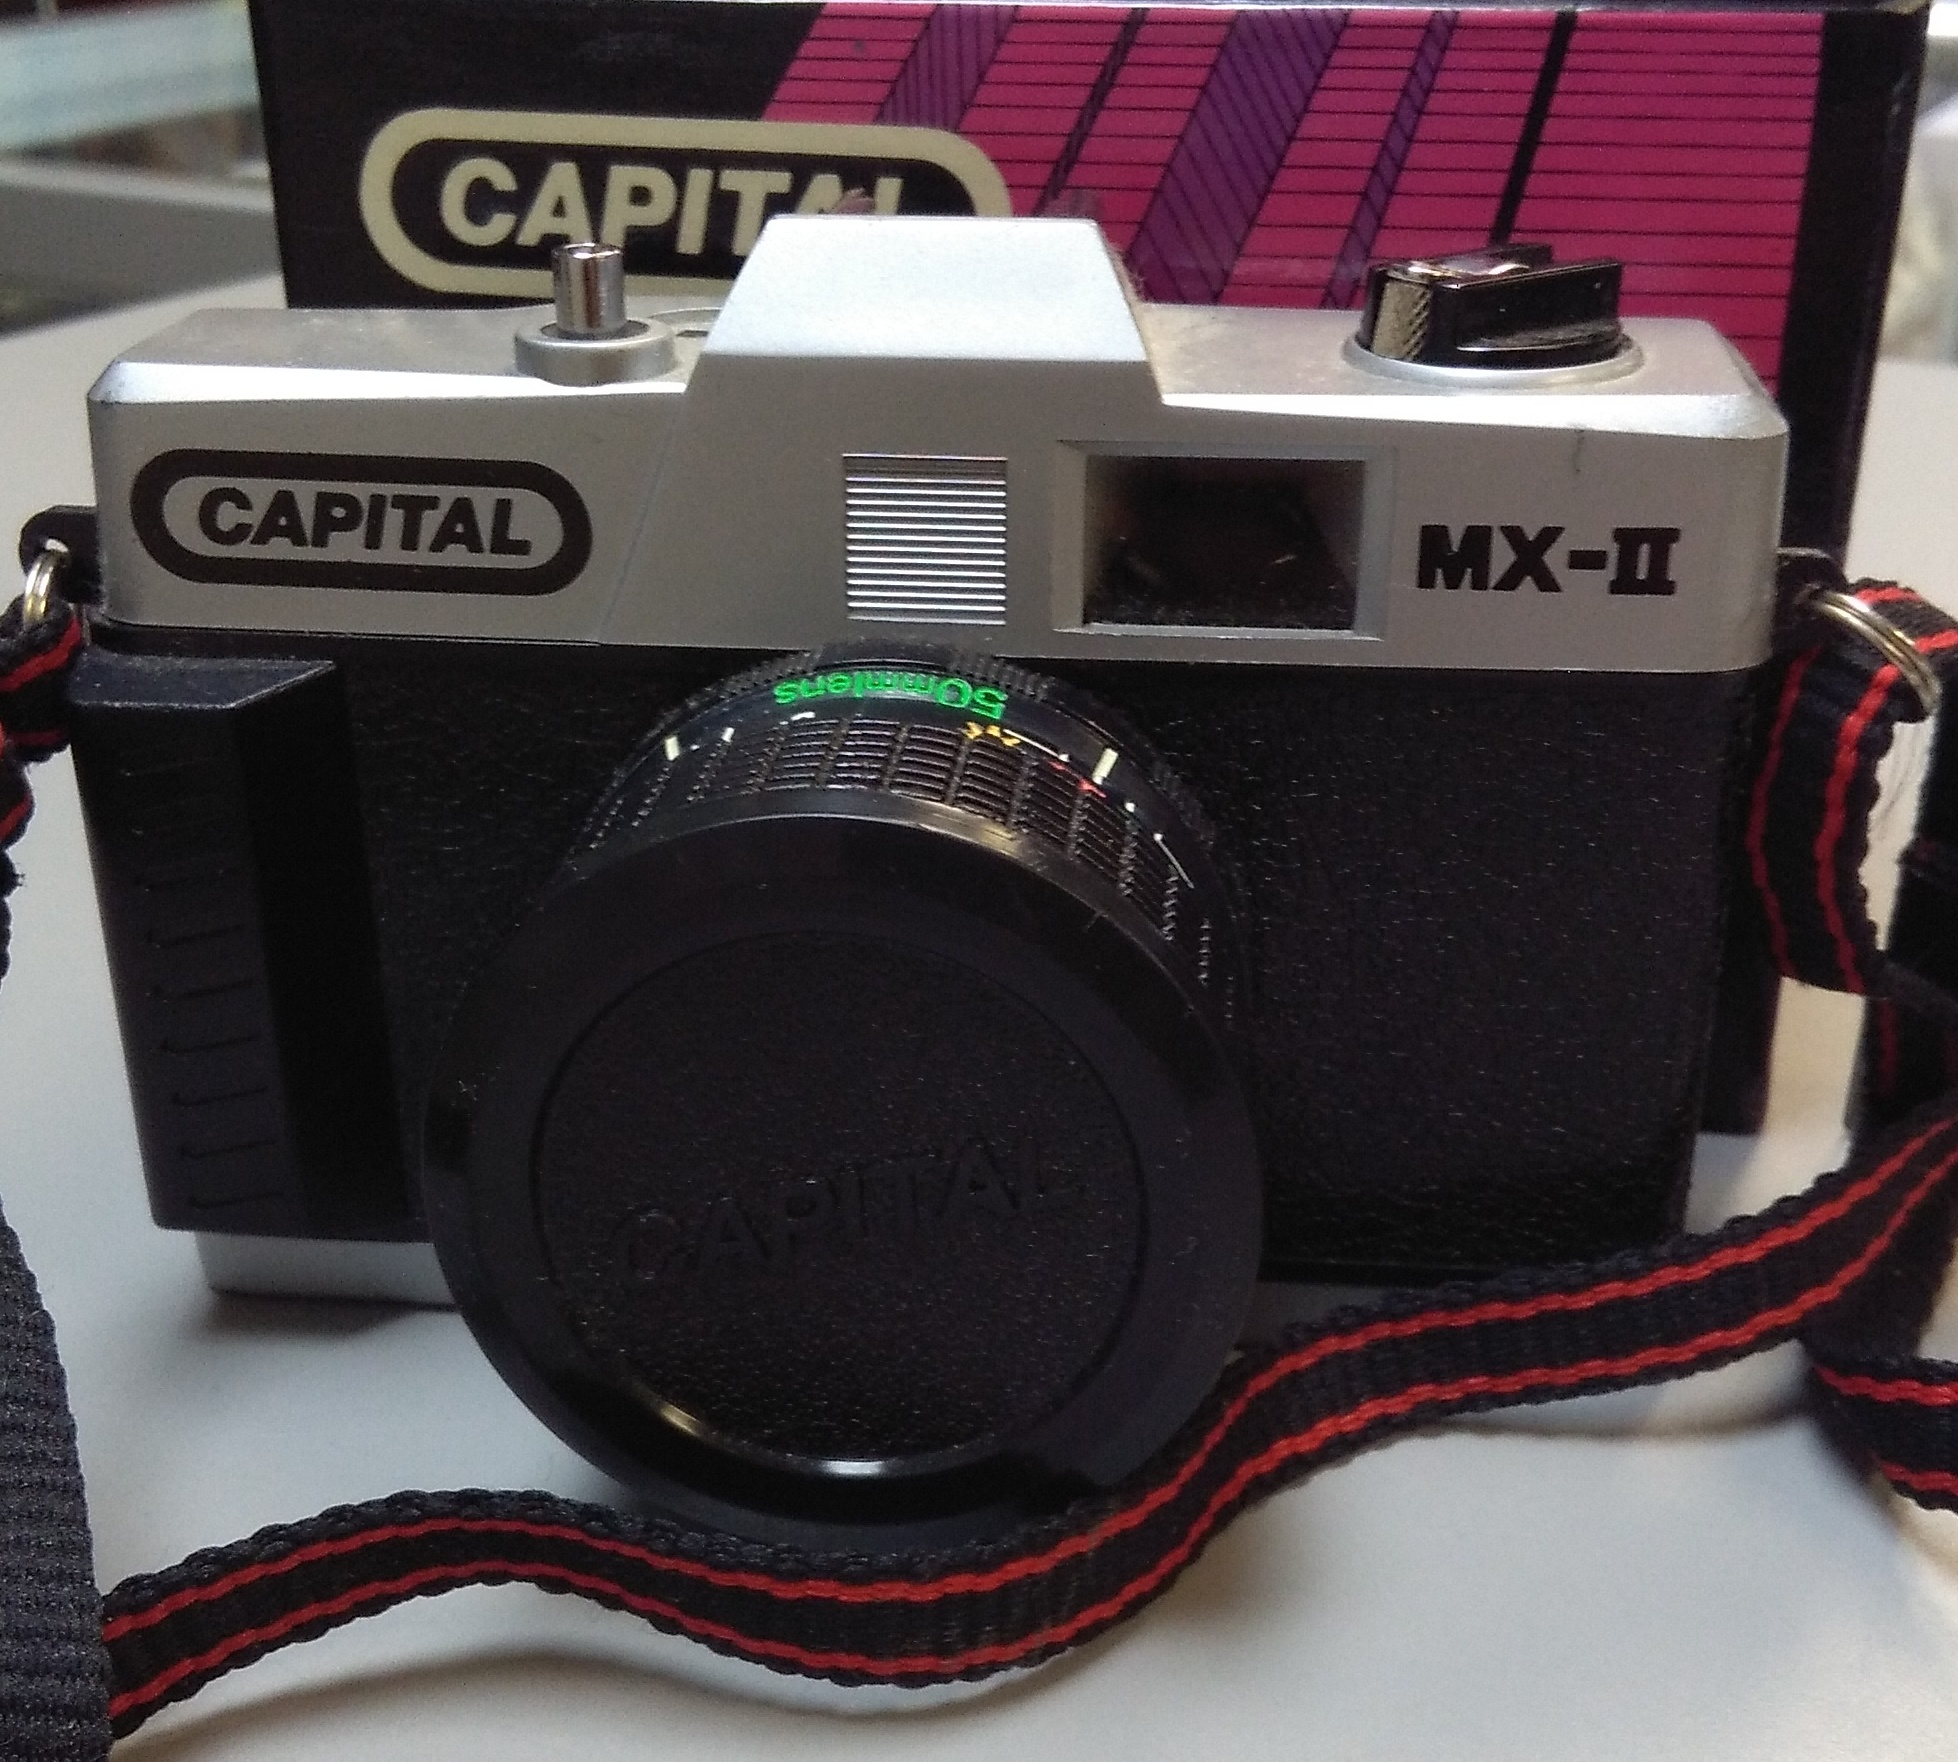 CAPITAL MX-II 35 MM CAMERA